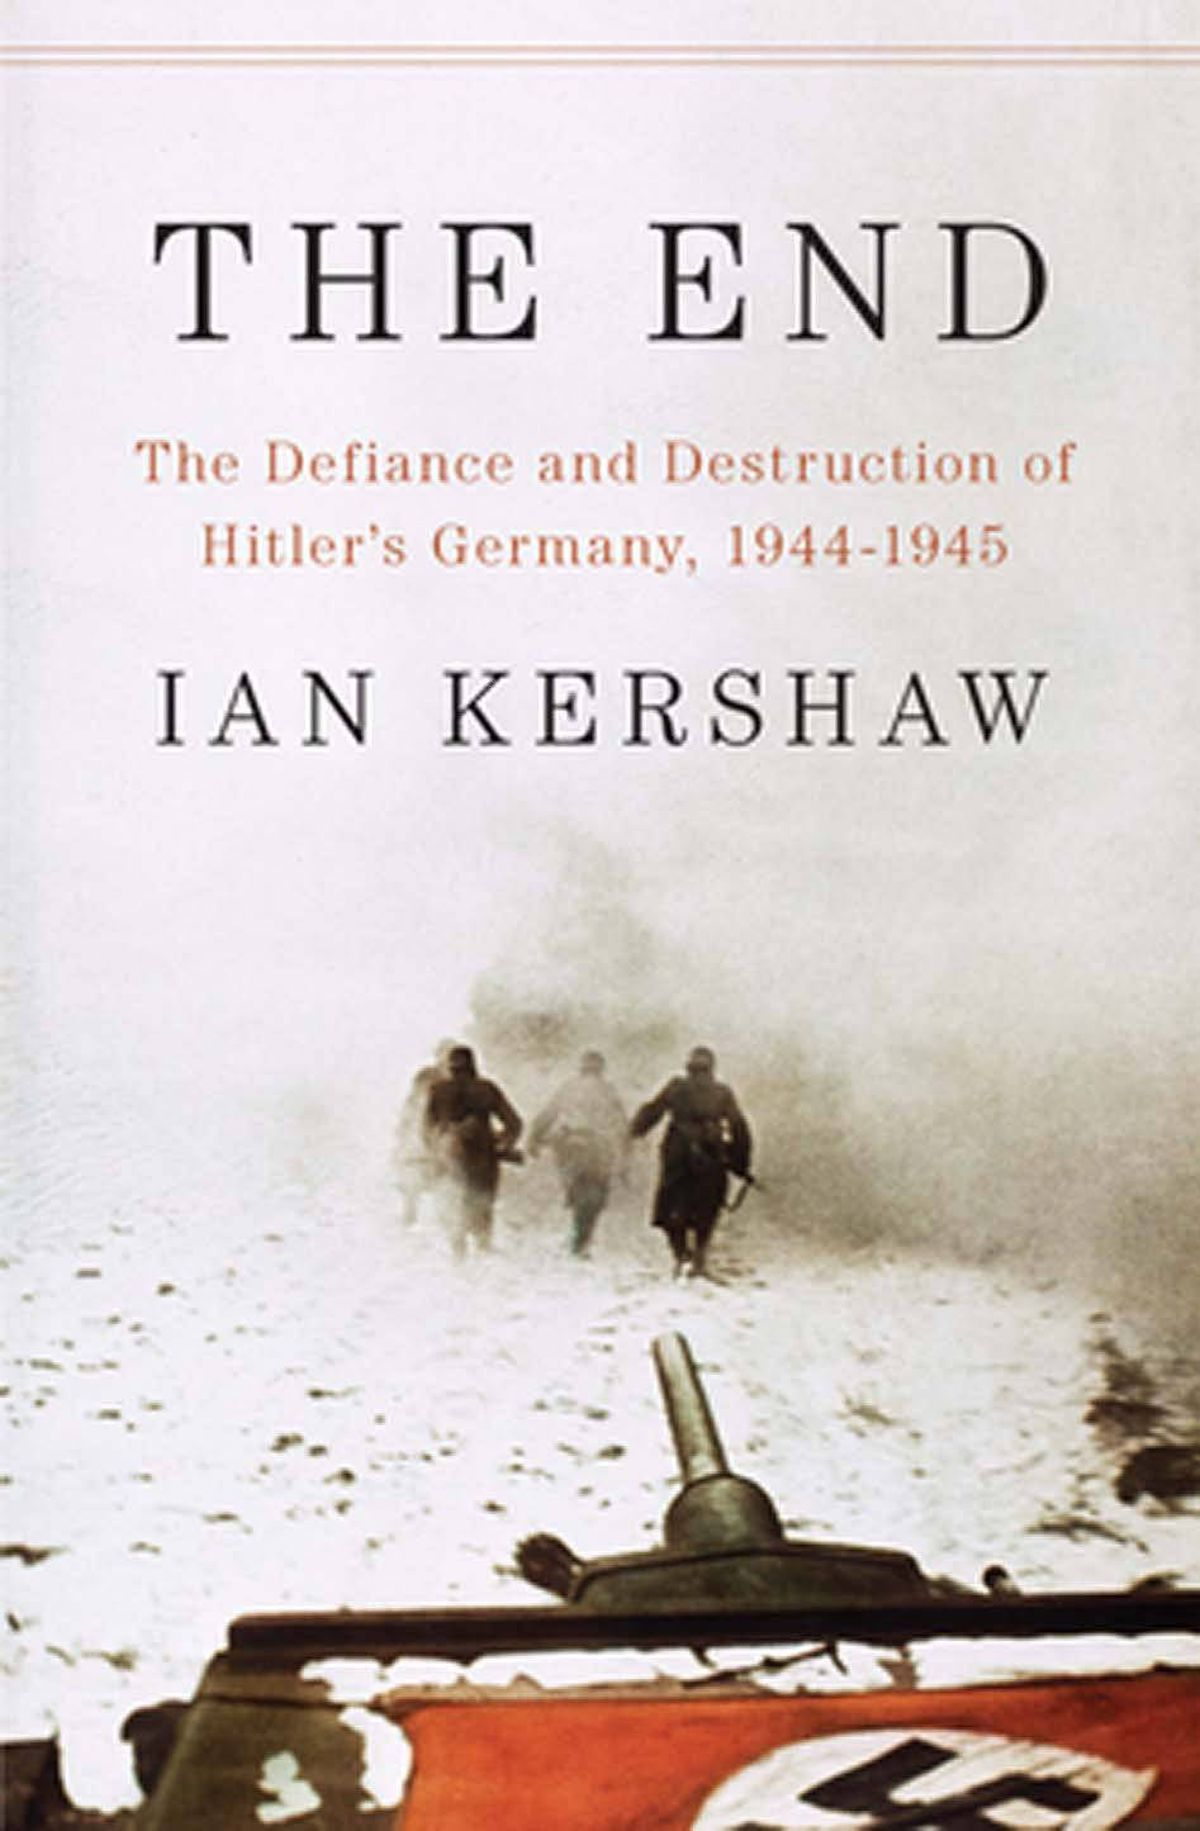 """THE END The Defiance and Destruction of Hitler's Germany, 1944-1945 By Ian Kershaw (Penguin Press) In this remarkable book, Kershaw (author of a definitive biography of Hitler) tells the story of the mass murder and homicidal suicide of the Third Reich in its final days with a mastery of detail so compelling that I could not put it down. A magnificent account of the """"twilight of the Nazi gods."""" – Jonathan Steinberg"""